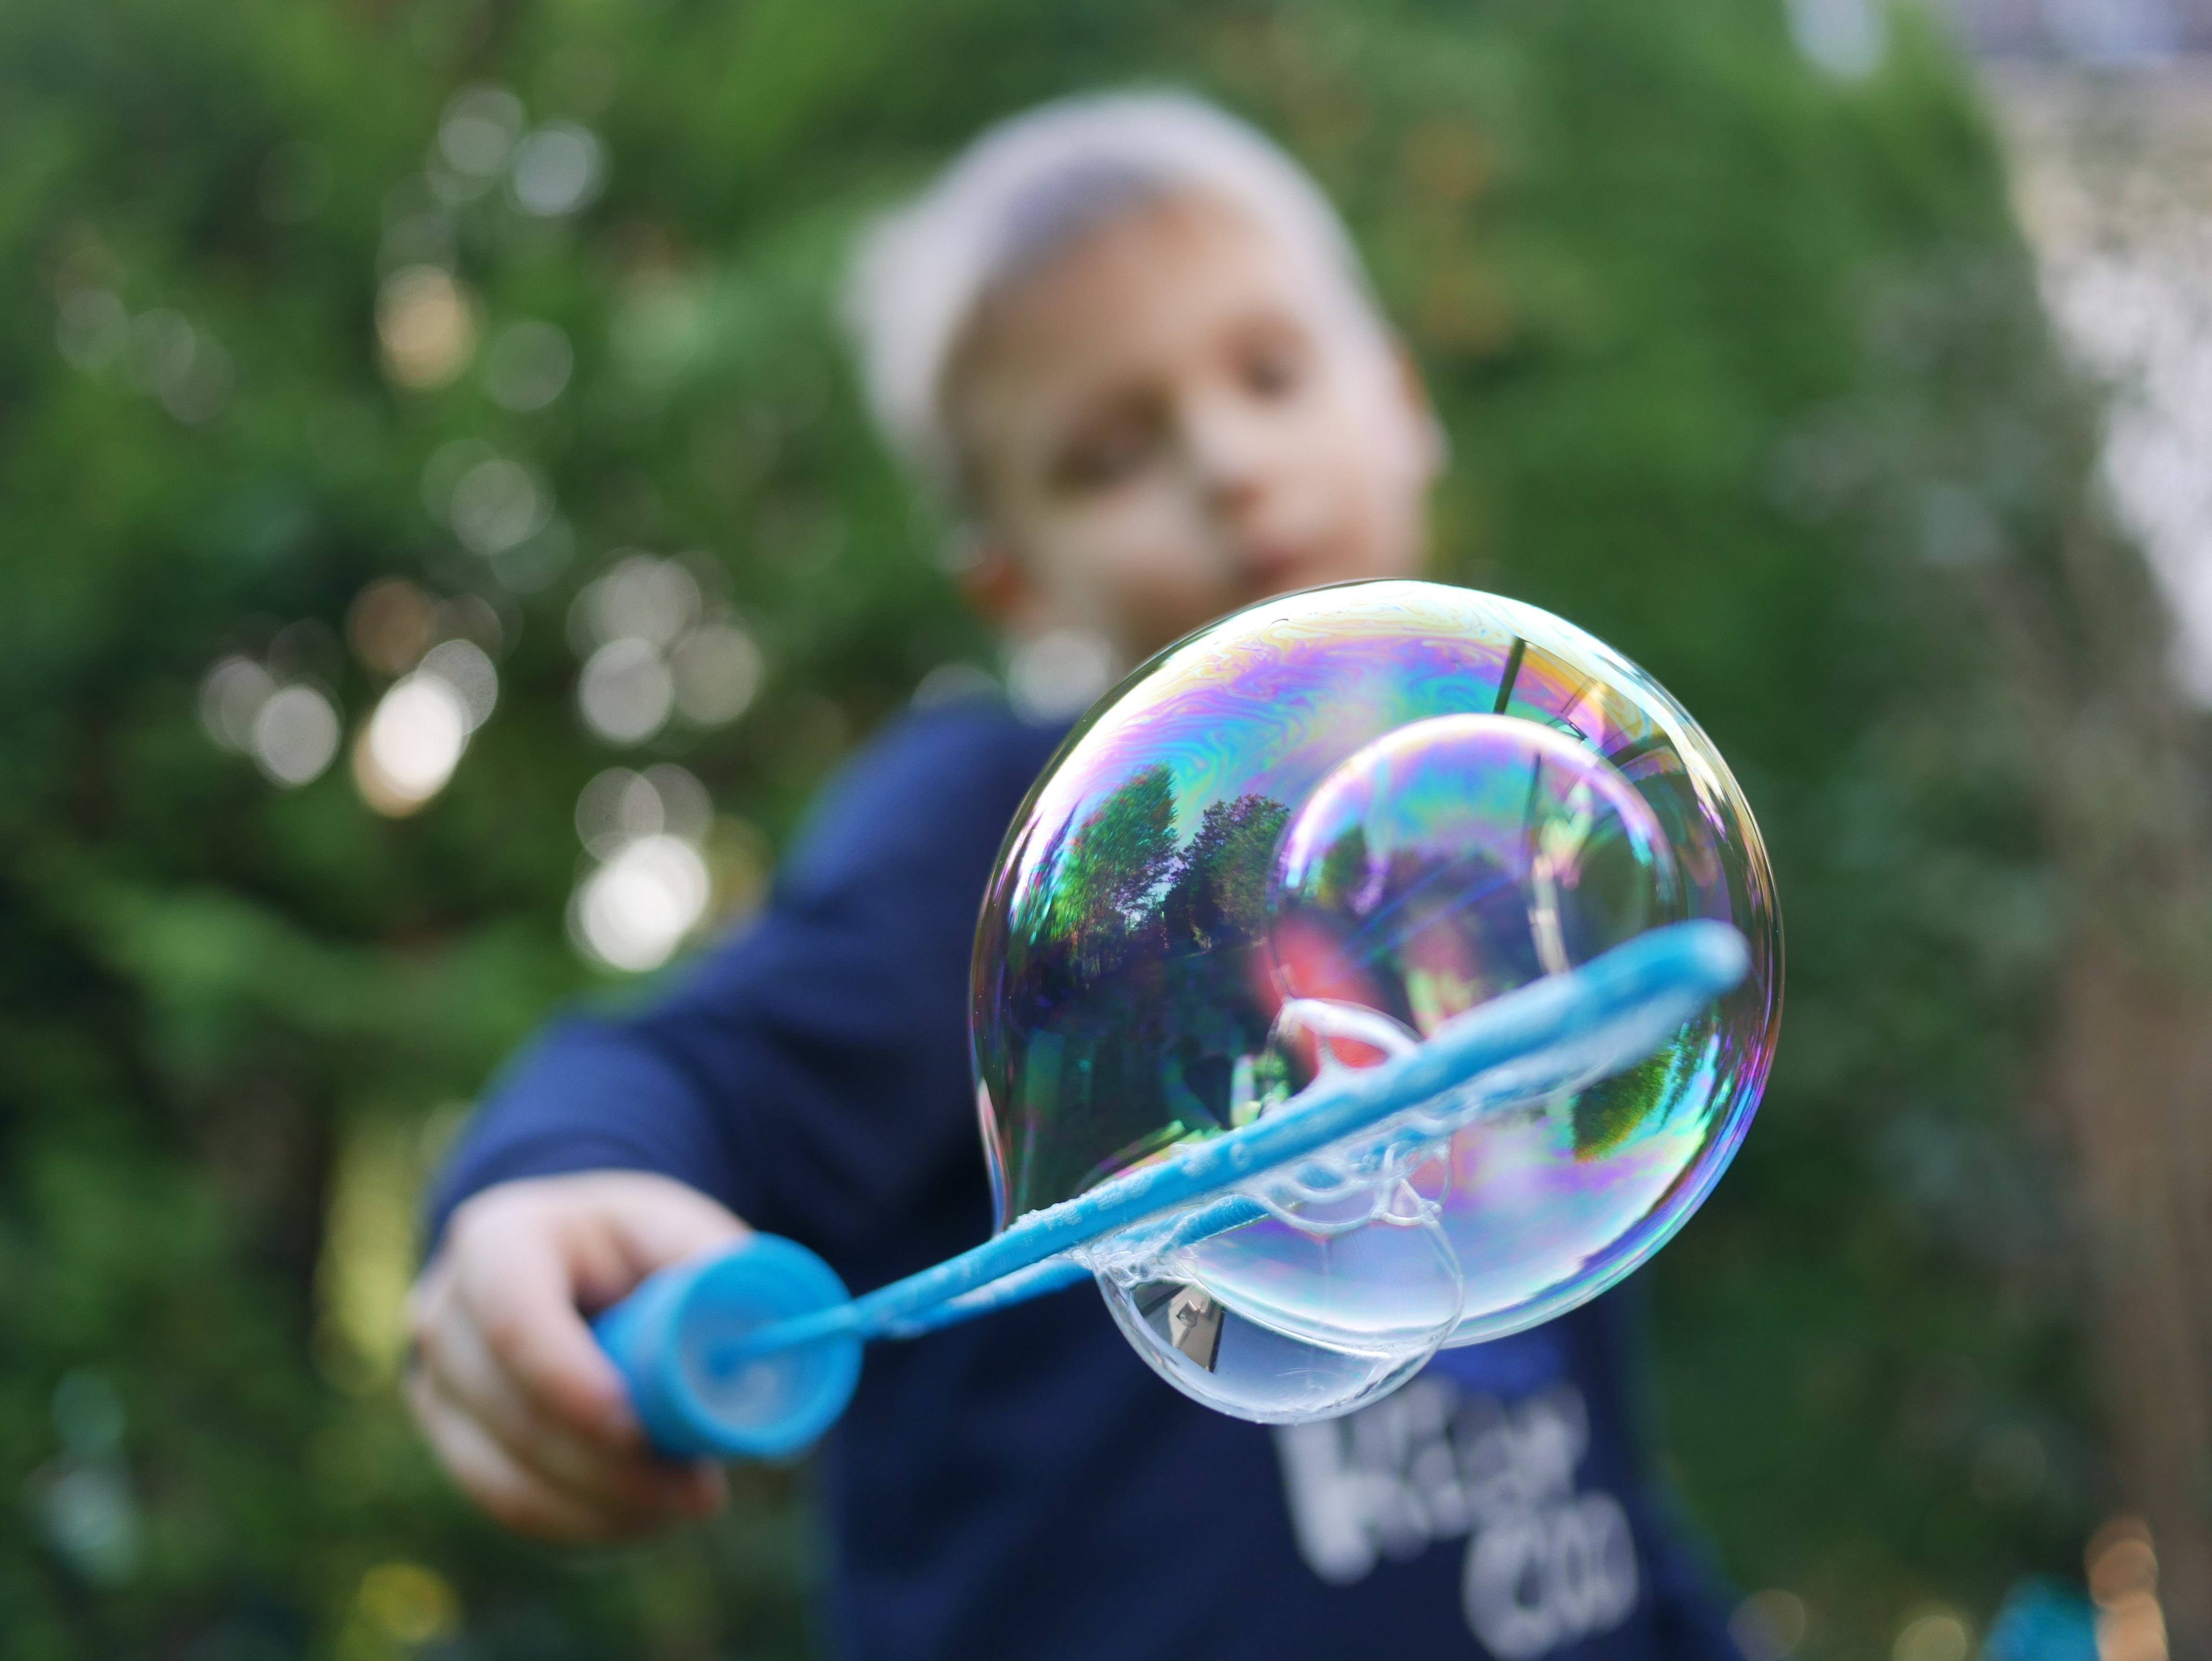 A child blowing soap bubbles helped change my life